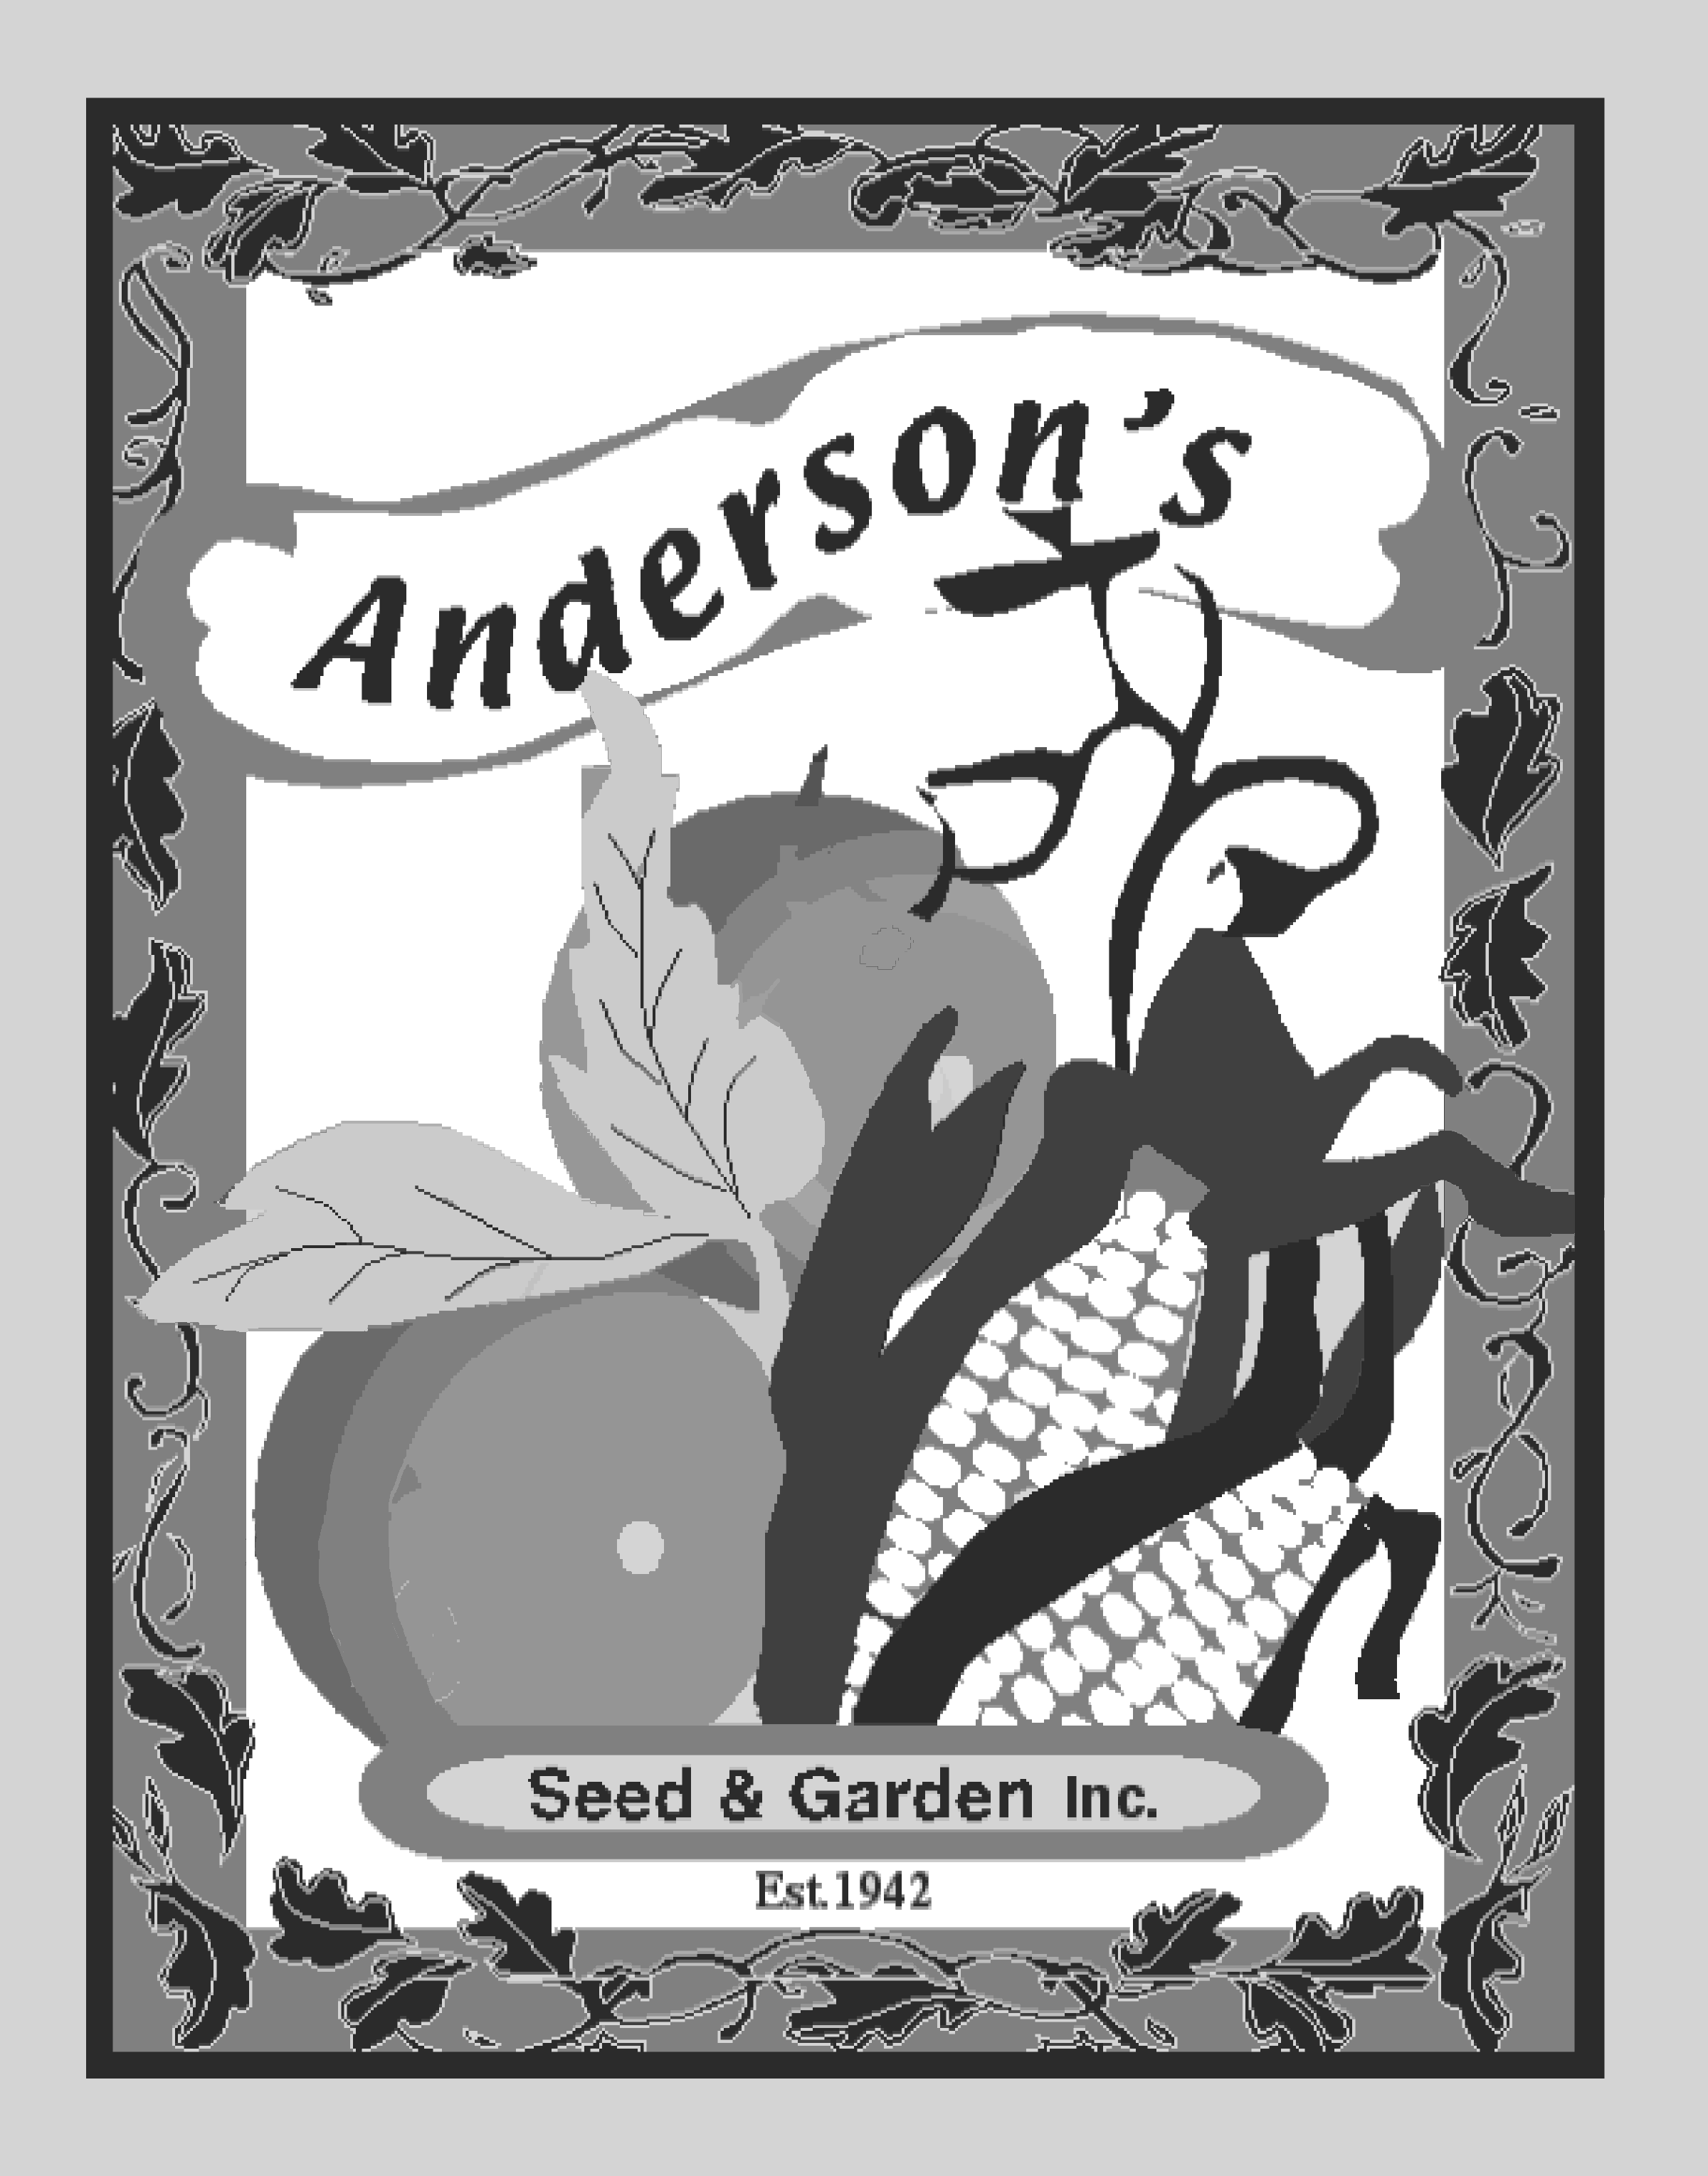 Sweetness Bicolor Sweet Corn Seed 1 lb.